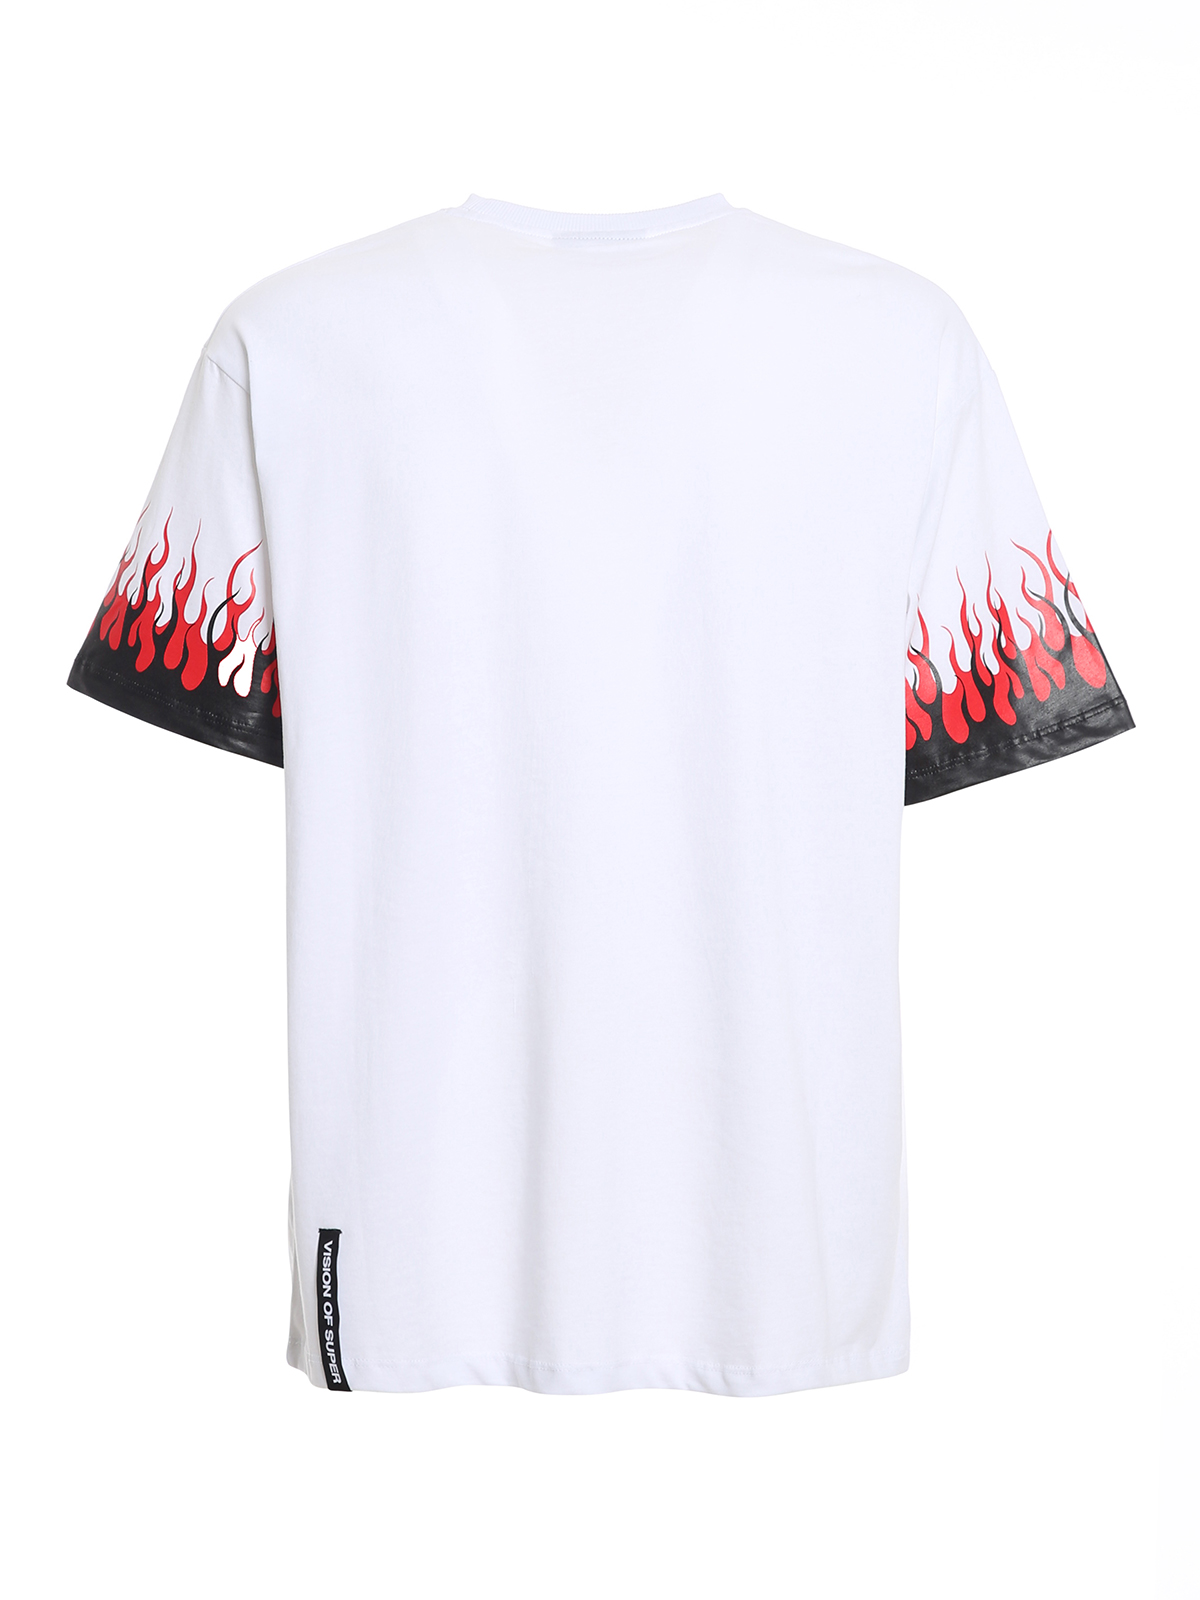 Picture of Vision Of Super   Tshirt Purple Double Flames